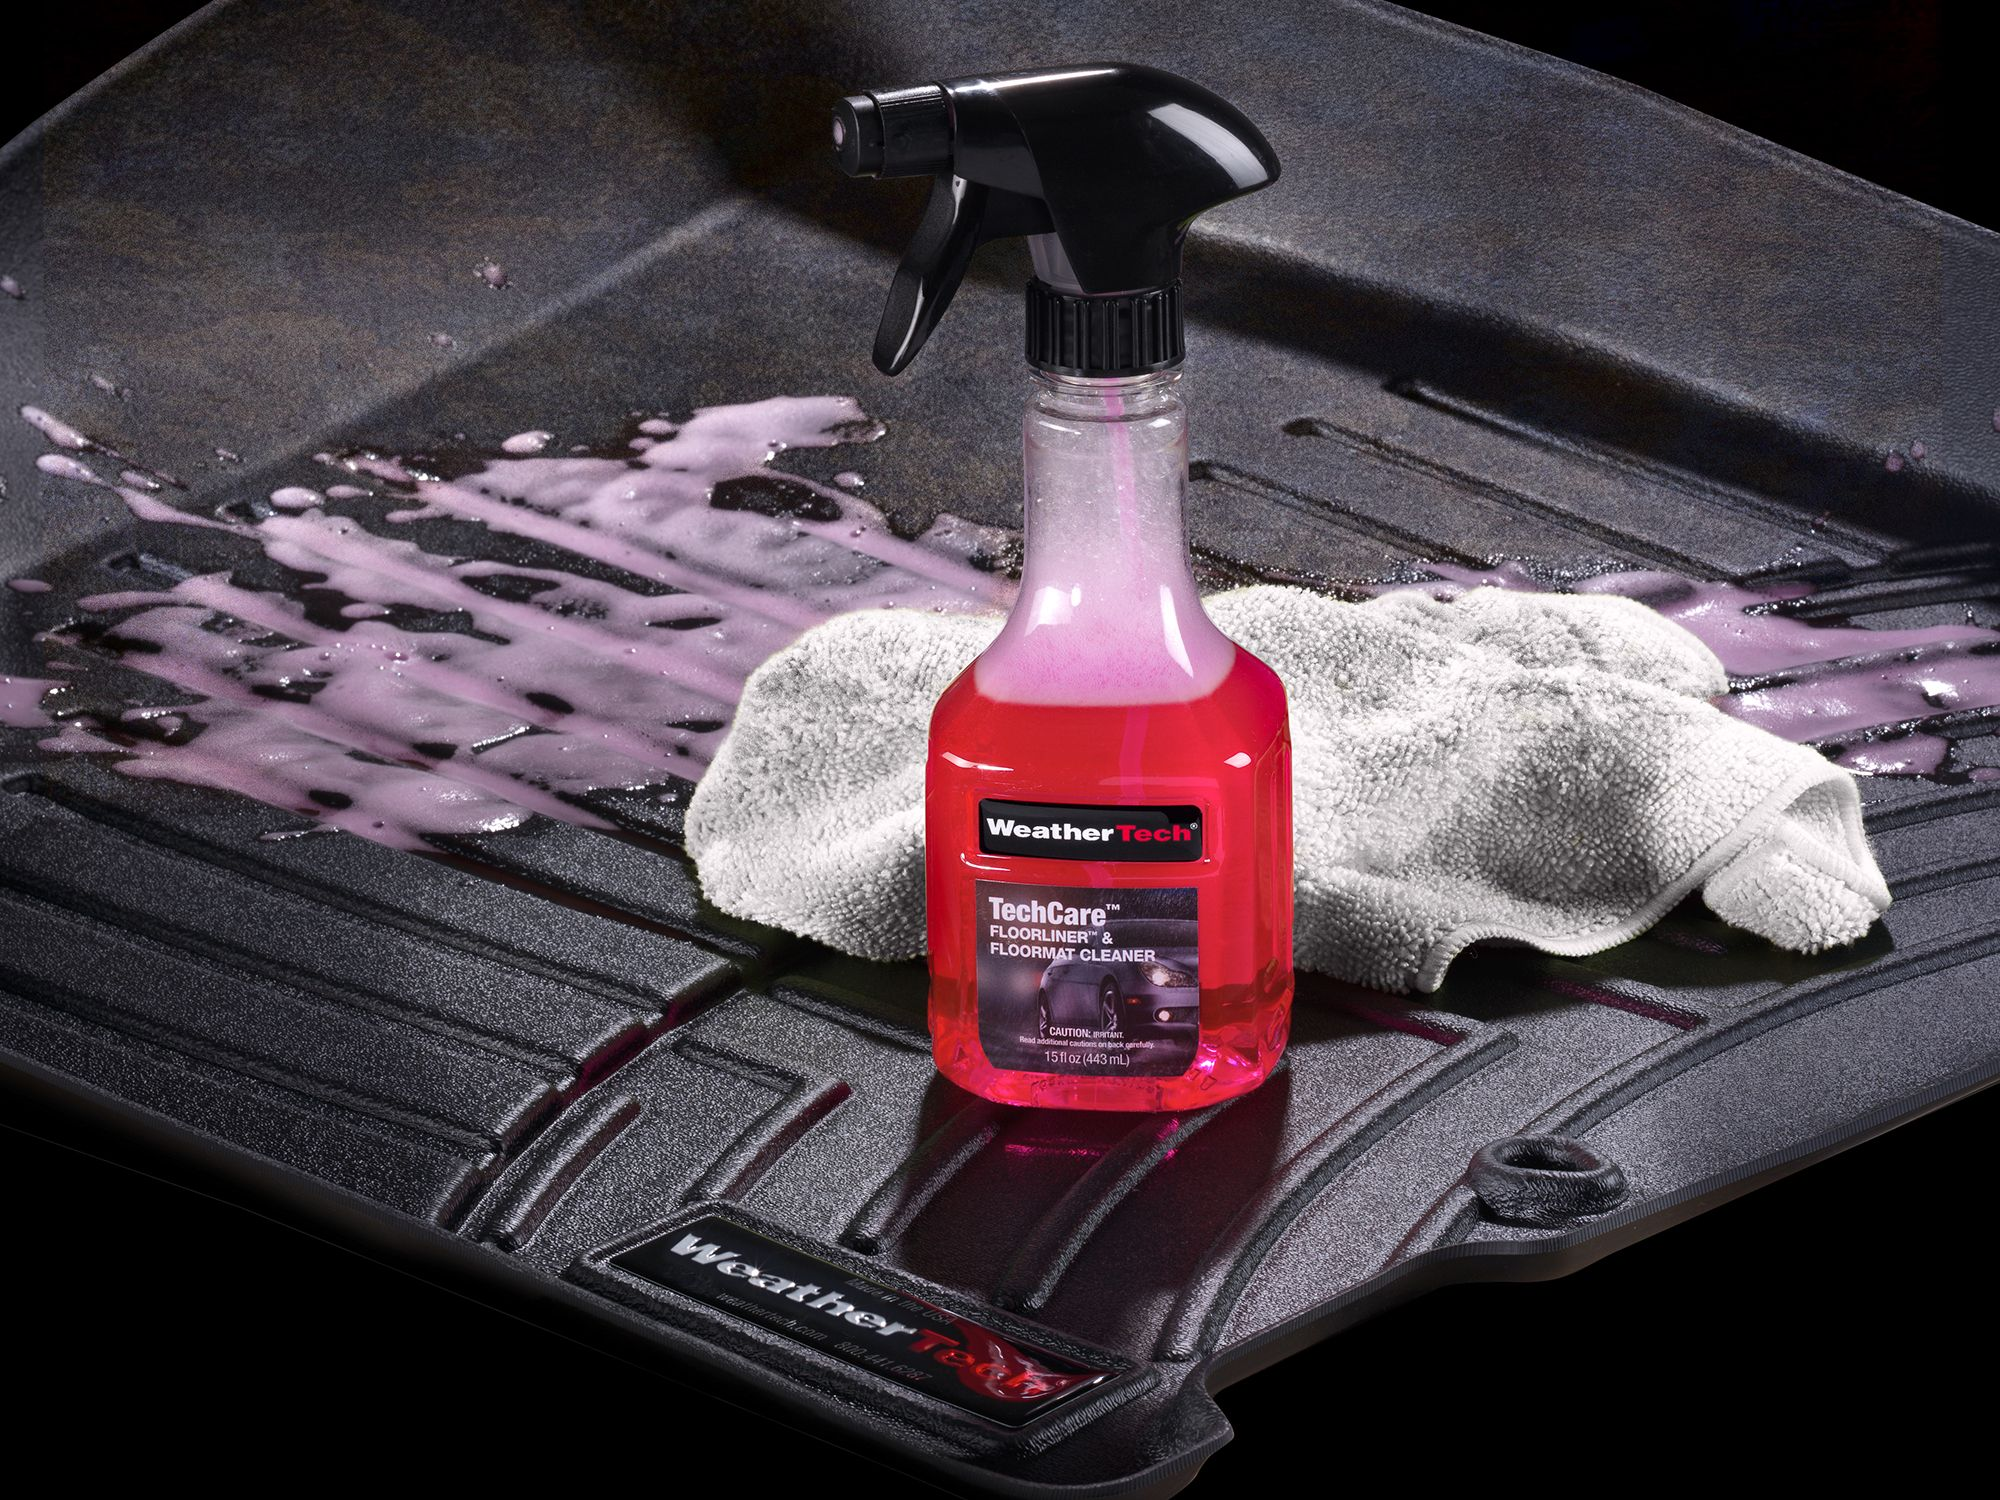 Weathertech mats cleaner - Techcare Floor Mat Cleaner And Protector Kit Combined Dissolves Grease And Oil Stains And Leaves A Like New Appearance And Anti Flip Finish On Your Floor